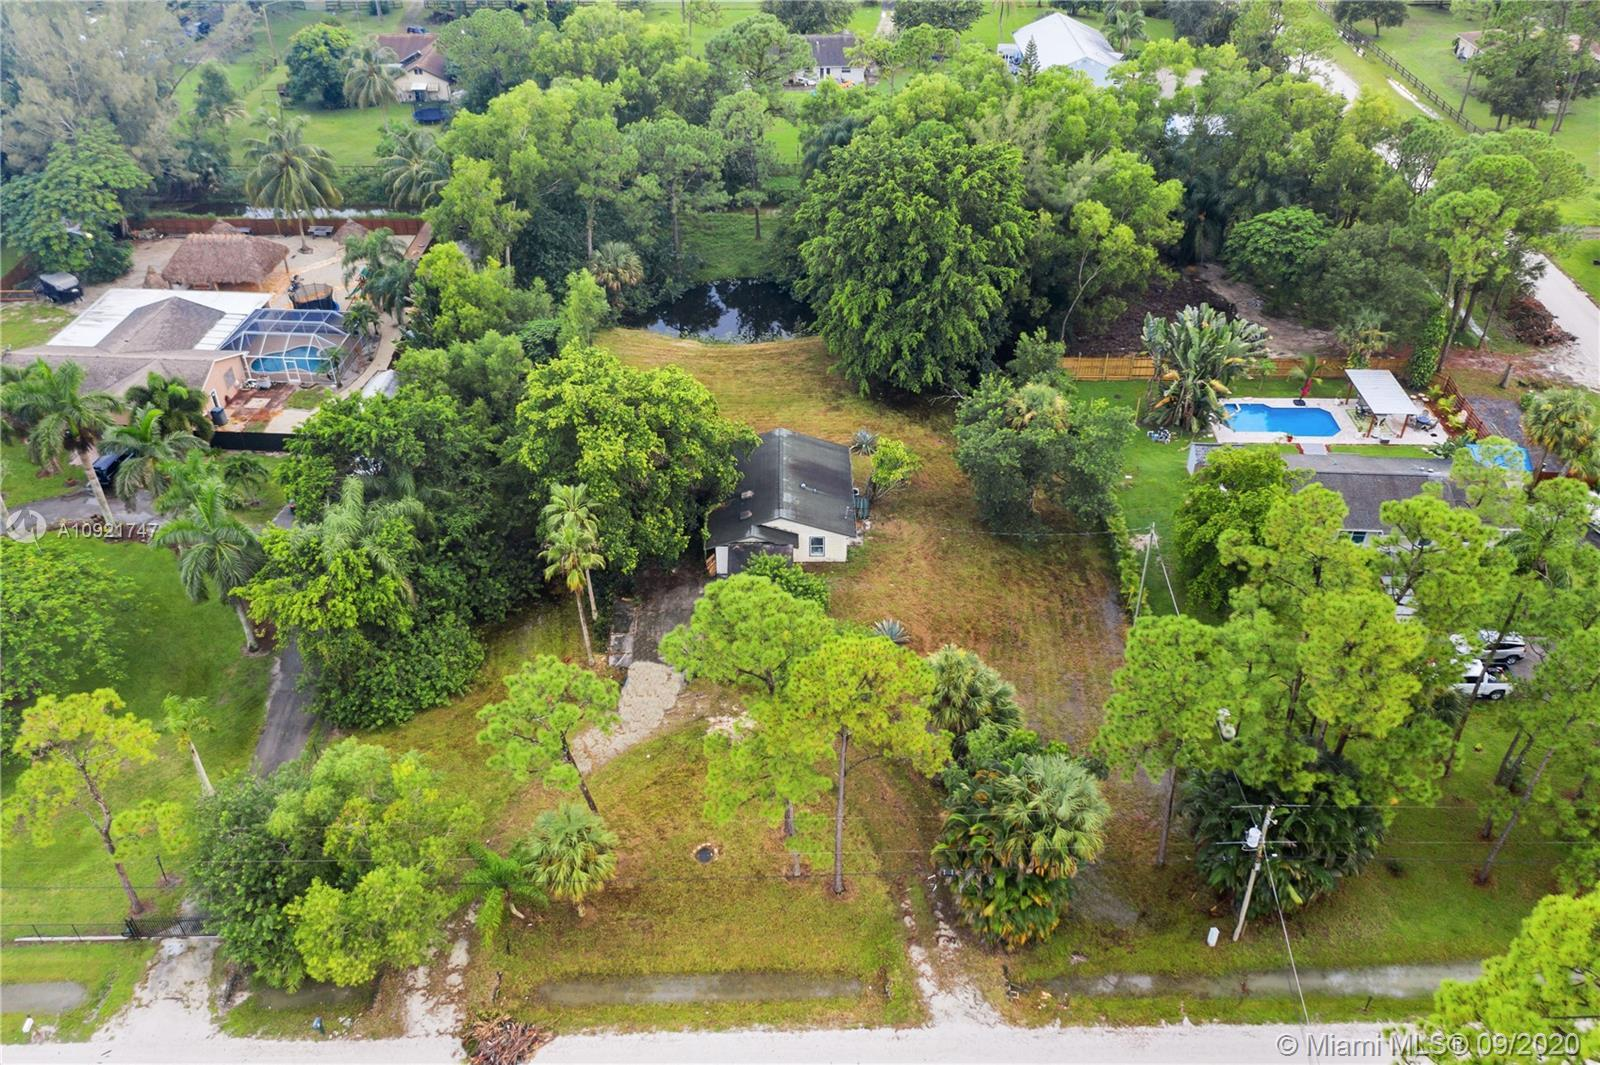 Fantastic opportunity to live in a completely renovated home in Loxahatchee. The home is remodeled w